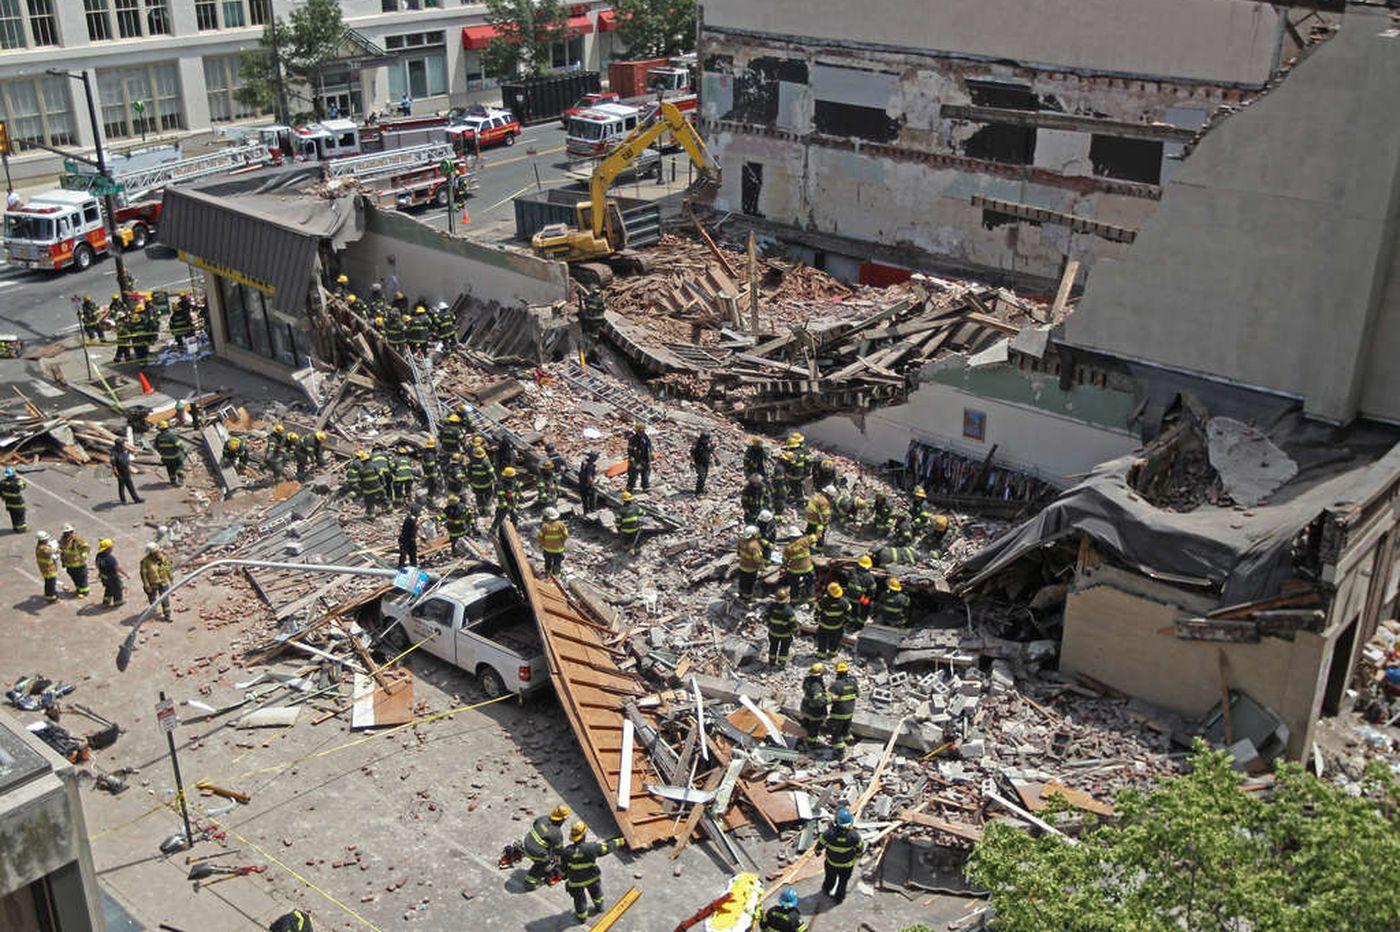 Brandywine Realty Trust buys Market Street block hit by building collapse